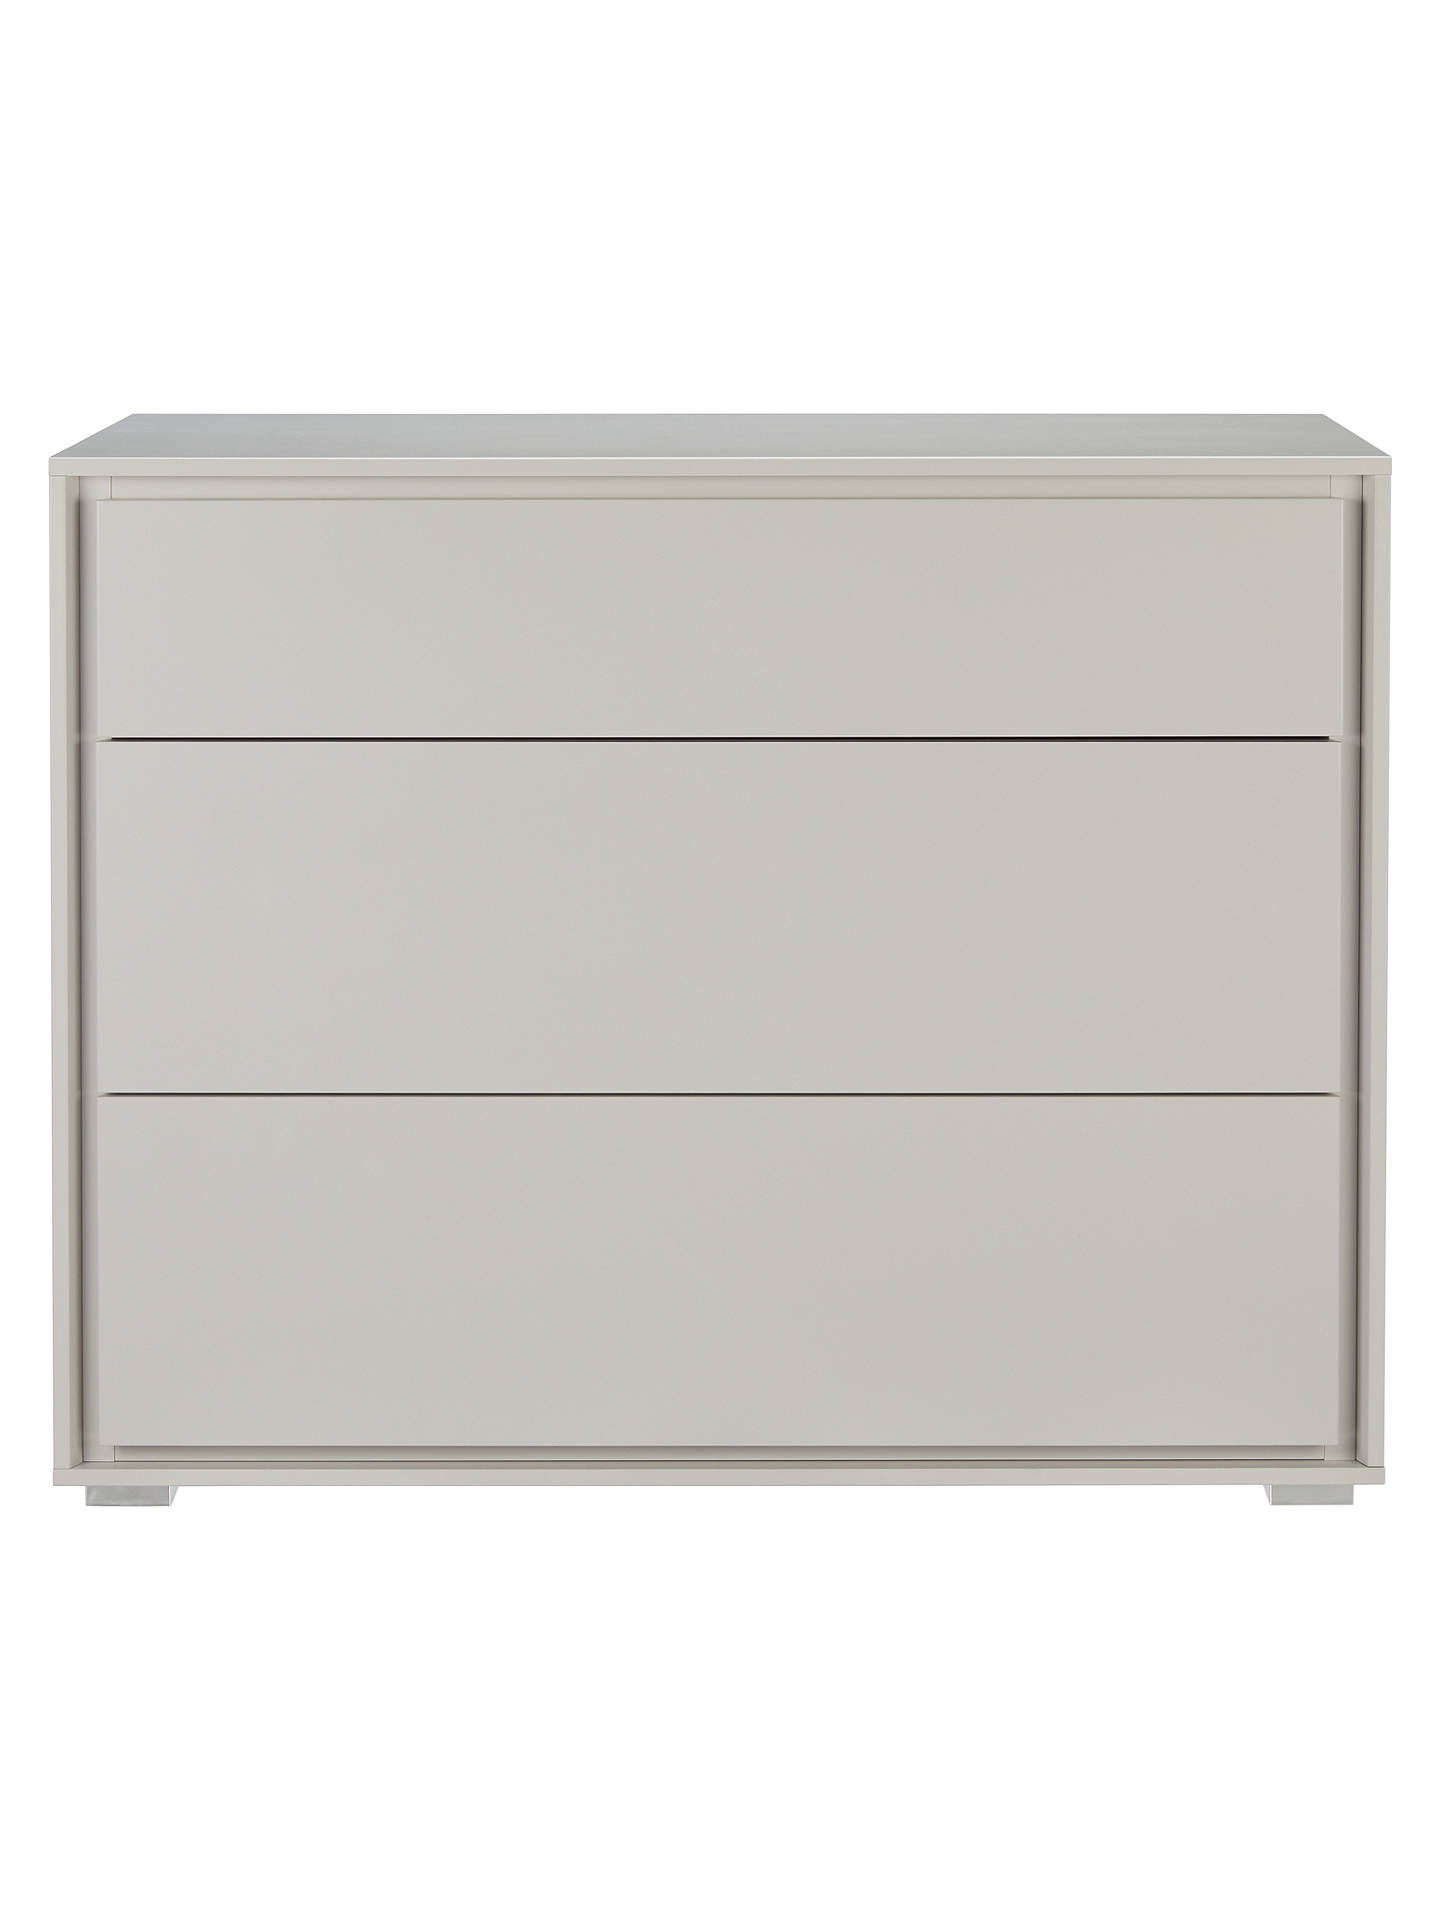 BuyJohn Lewis & Partners Napoli 3 Drawer Chest, Matt Grey Online at johnlewis.com